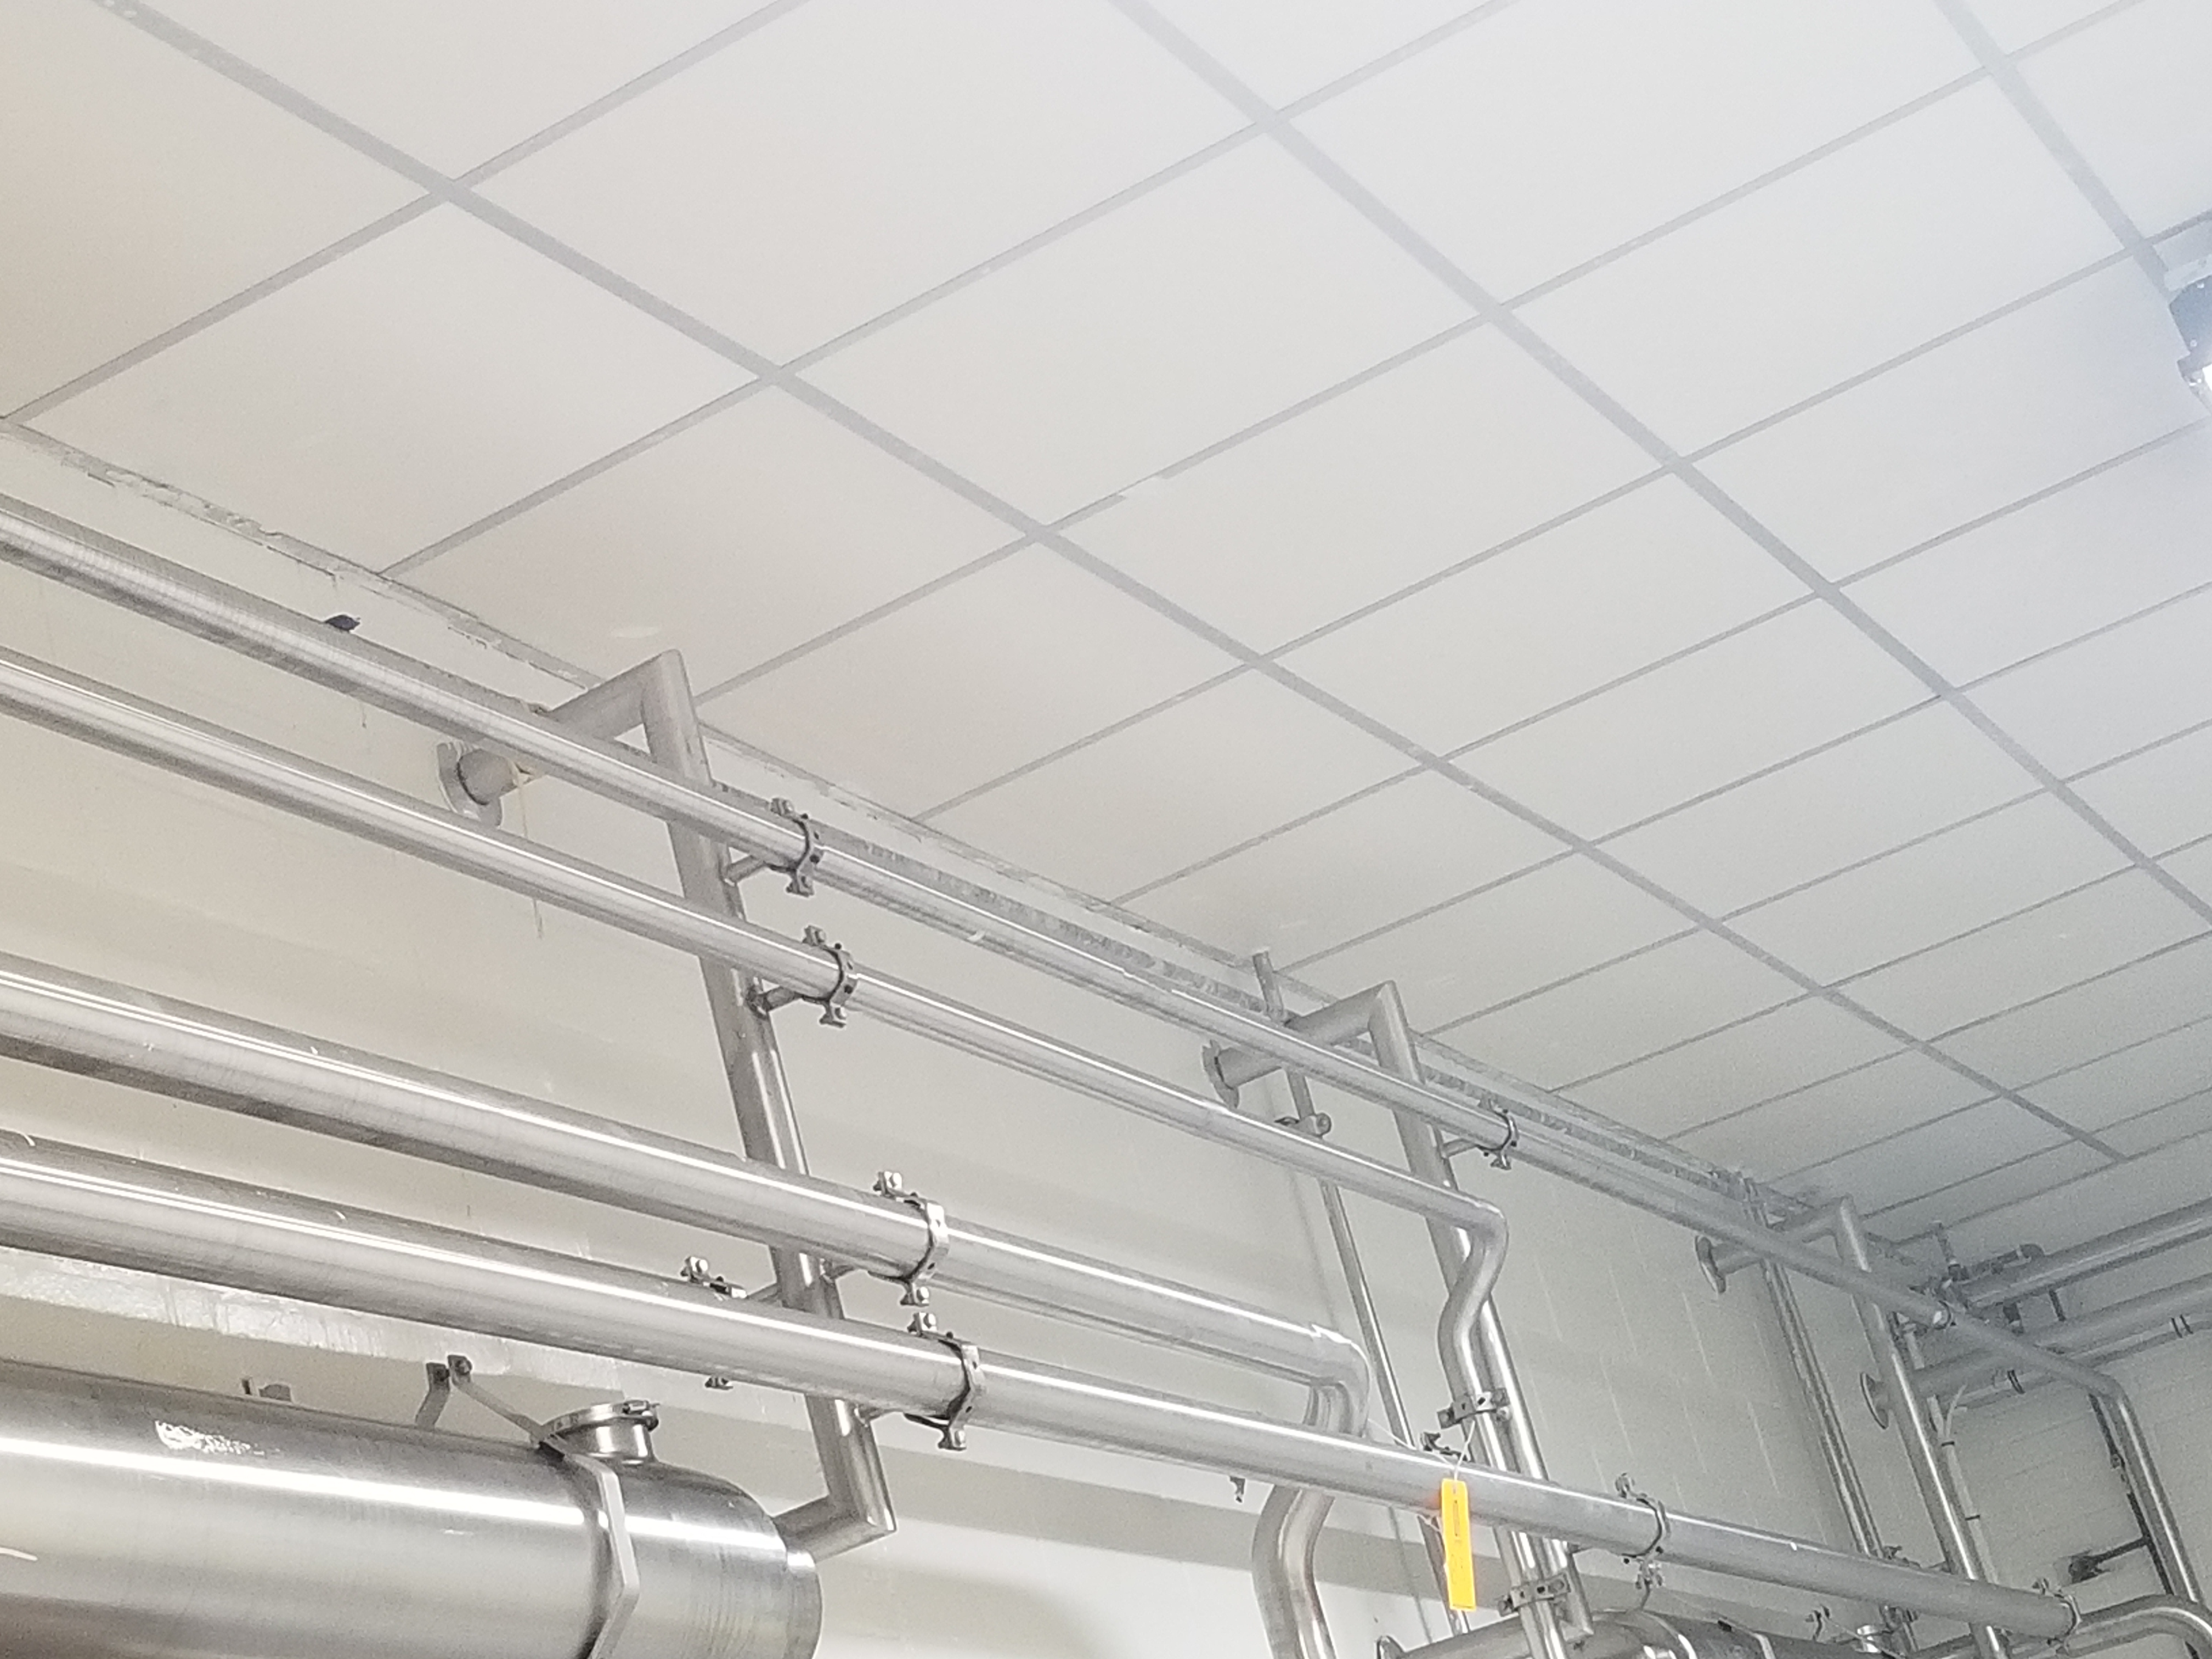 80 feet of 2 inch piping with 90¡ elbows - Image 2 of 2